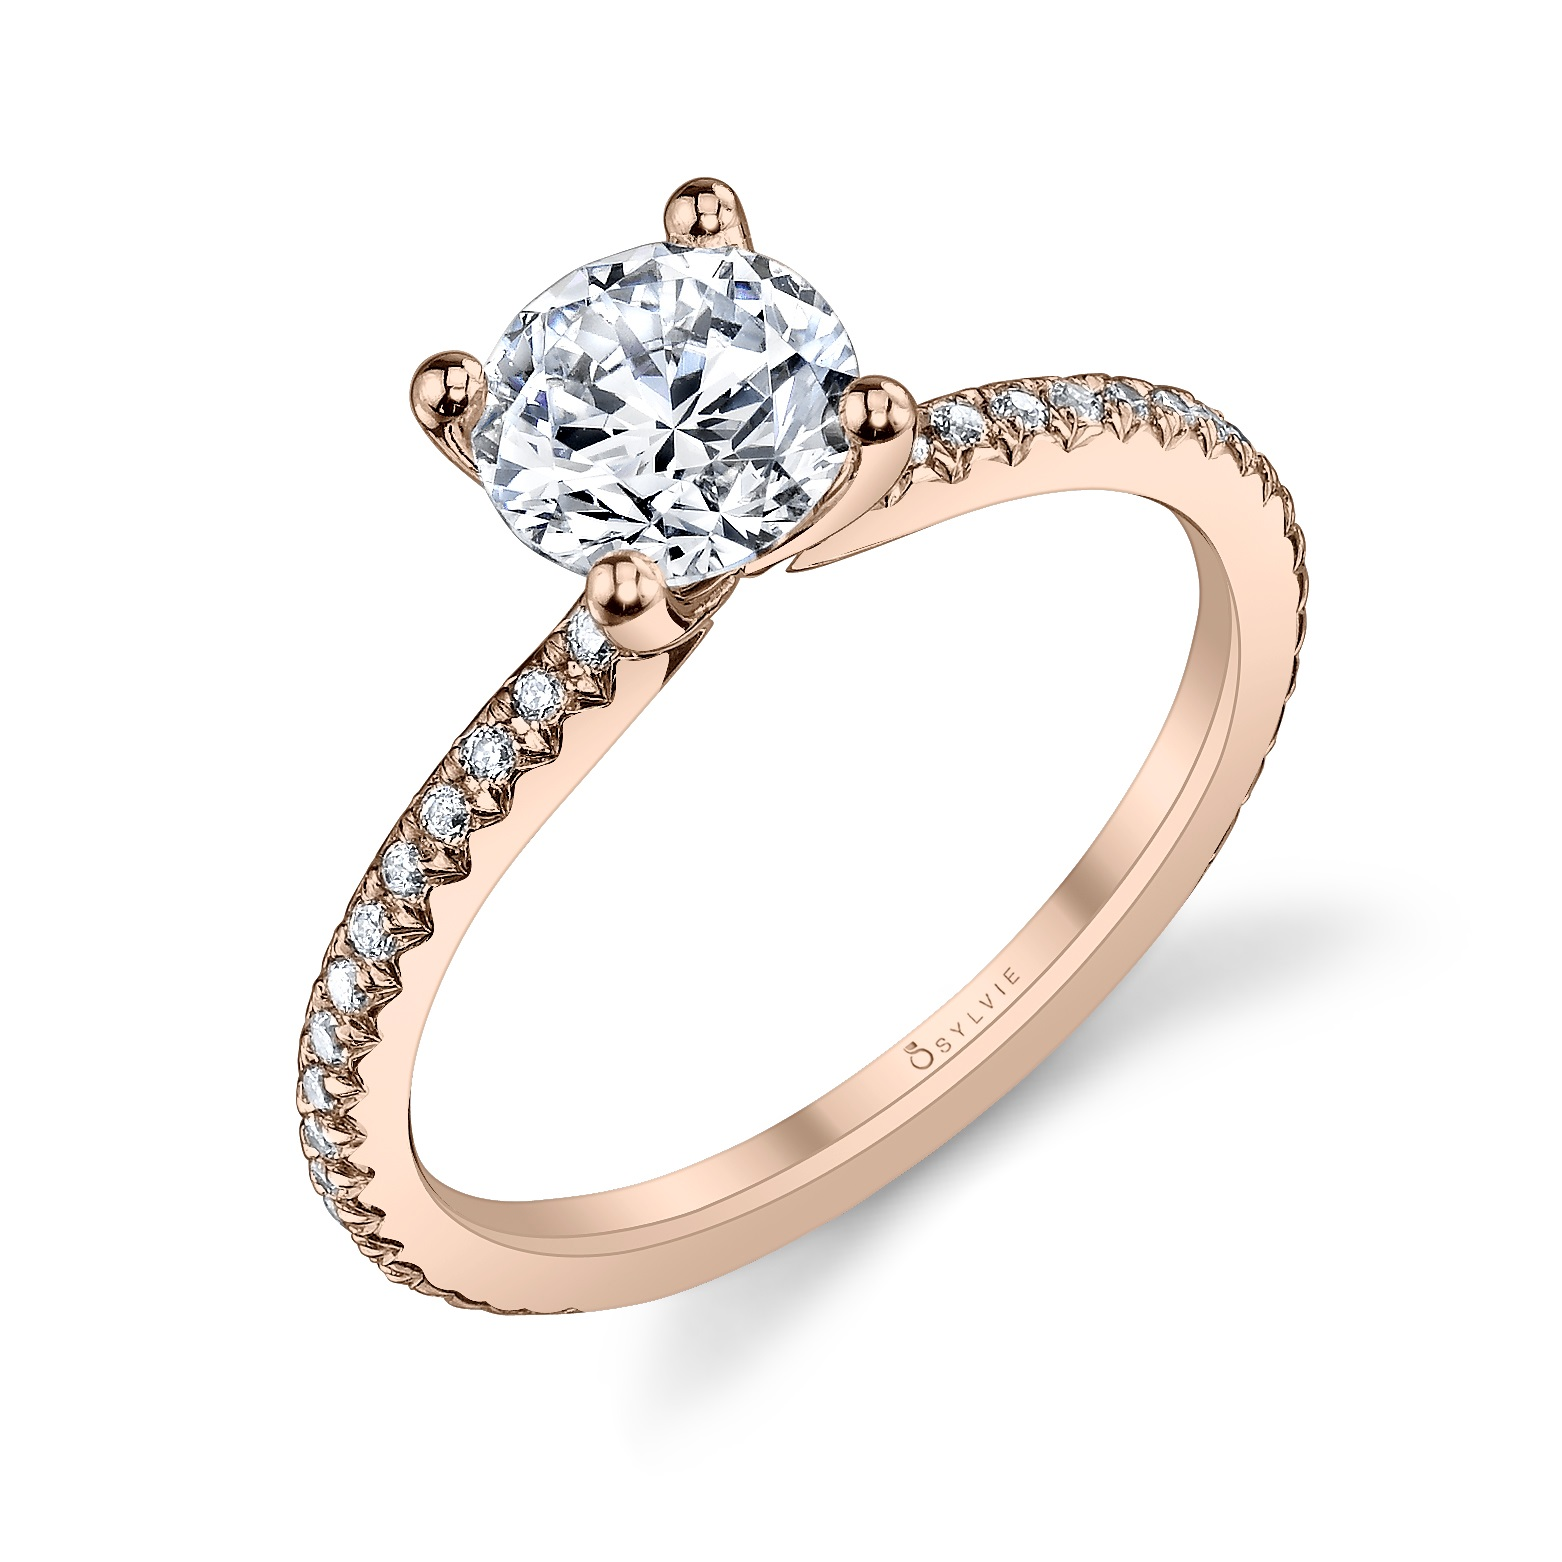 Round Solitaire Engagement Ring_S1093-021A4W10R